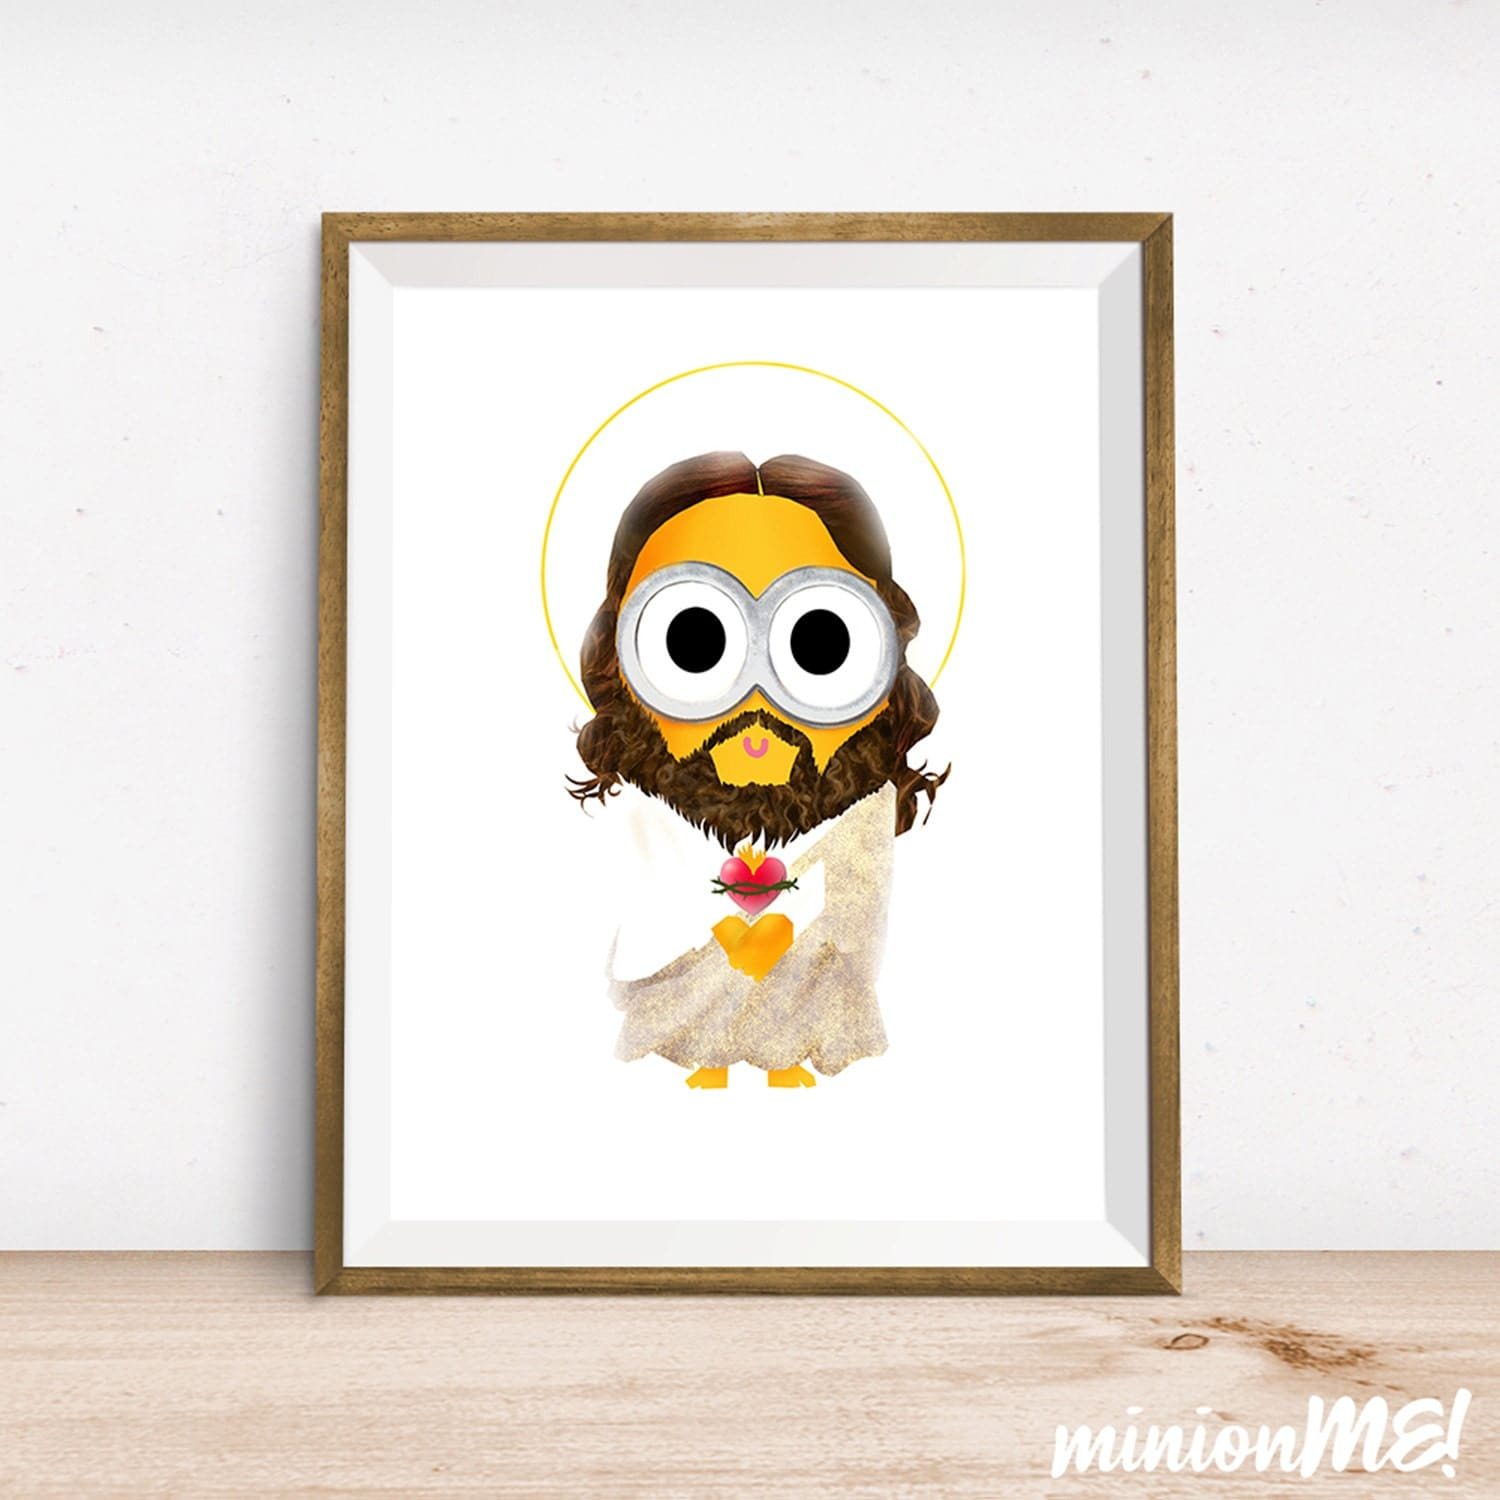 Wall Decor Jesus : Jesus minion print wall decor art home by kkehasuk